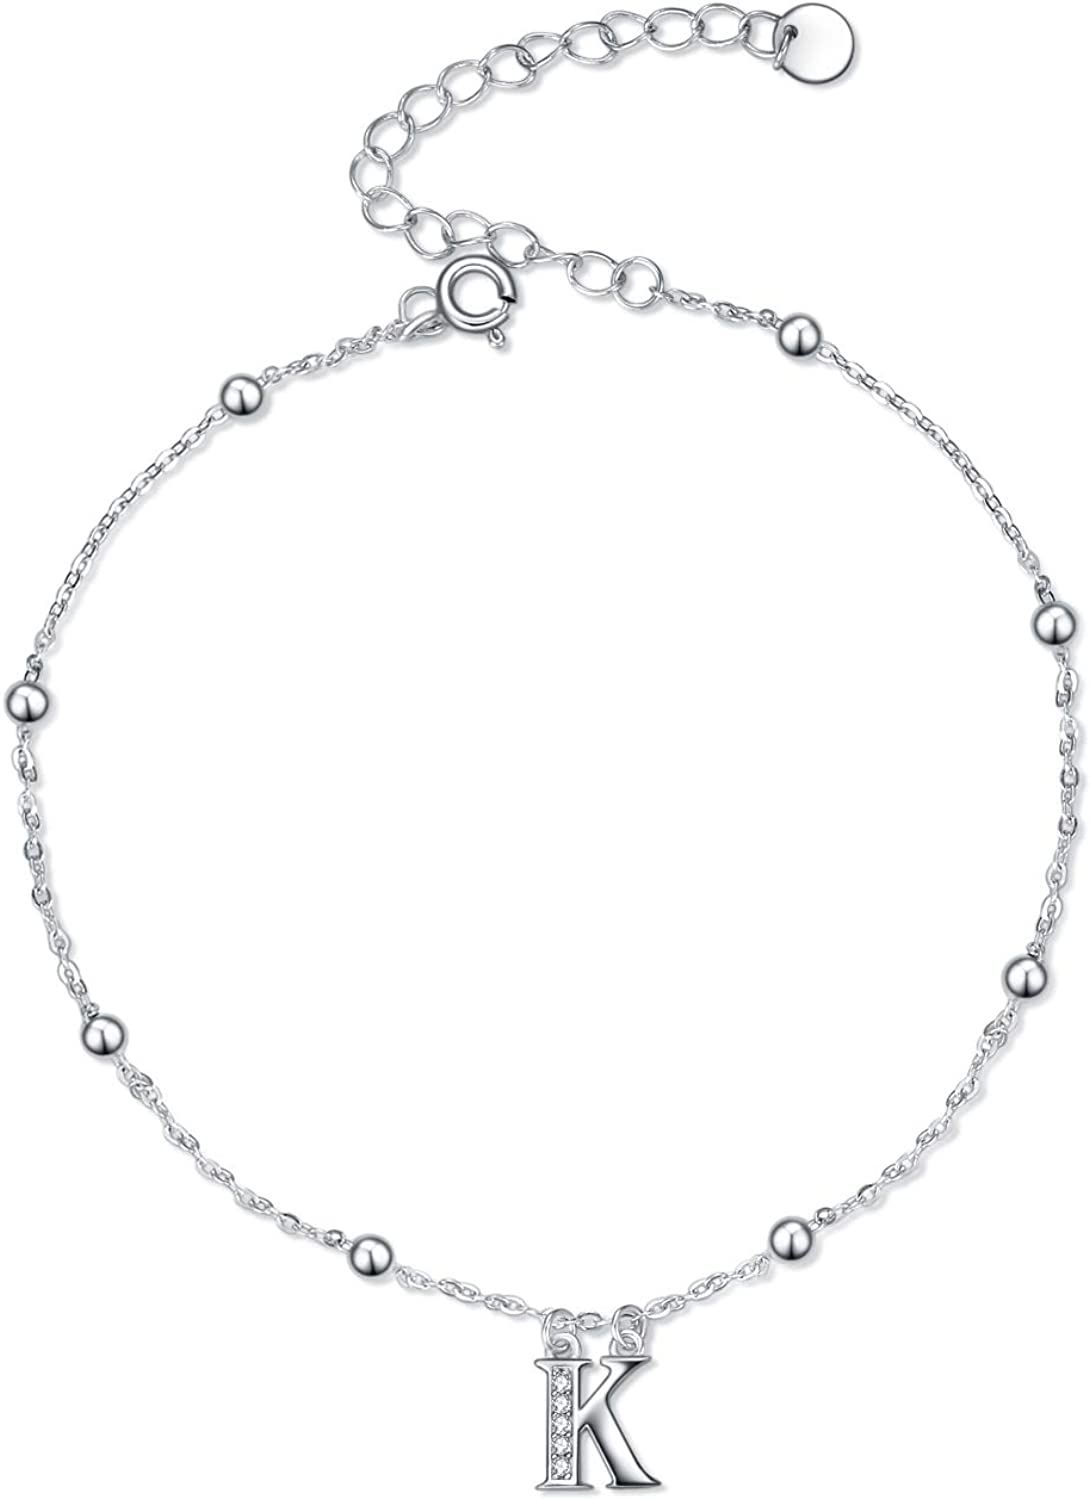 Anklets Sterling Silver 925 Heart Anklet Love Heart Adjustable Ankle Bracelet A35 Colmartropicale Com My Animal and doll joints are commonly used when you want your animal/ doll has the ability of arms and legs movements. colmar tropicale